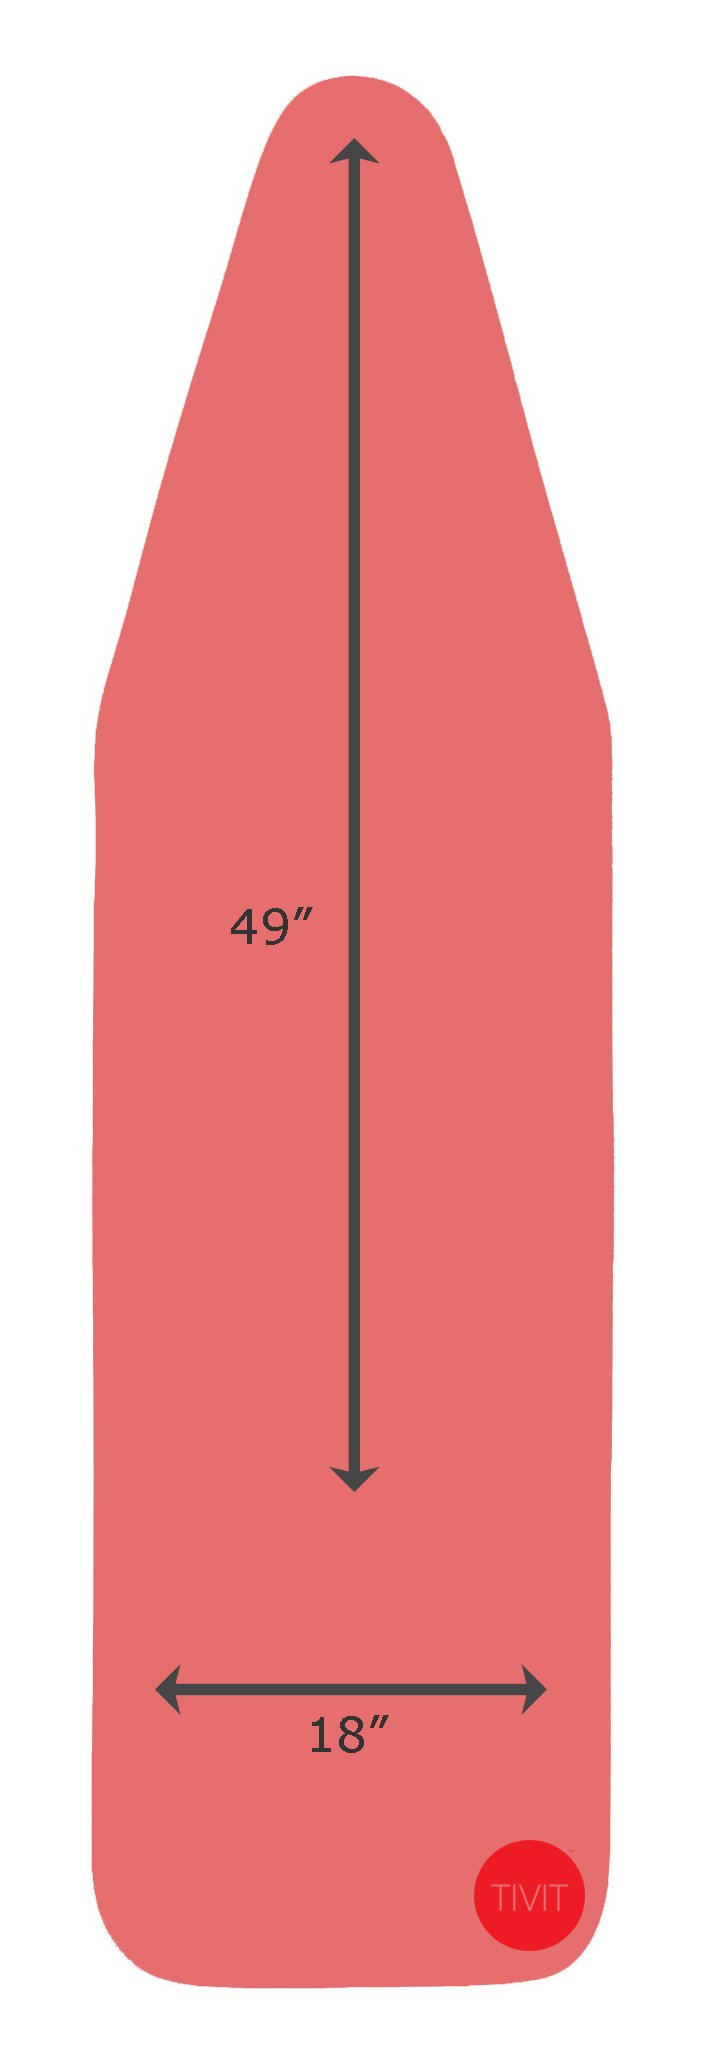 18 x 49 Inch CottonTek Pro - Heat-Reflective Advanced Cotton Technology - 5 Layer Padded Ironing Board Cover for Ironing & Steaming with Full Aluminum Lining - Coral Red/Patent Pending